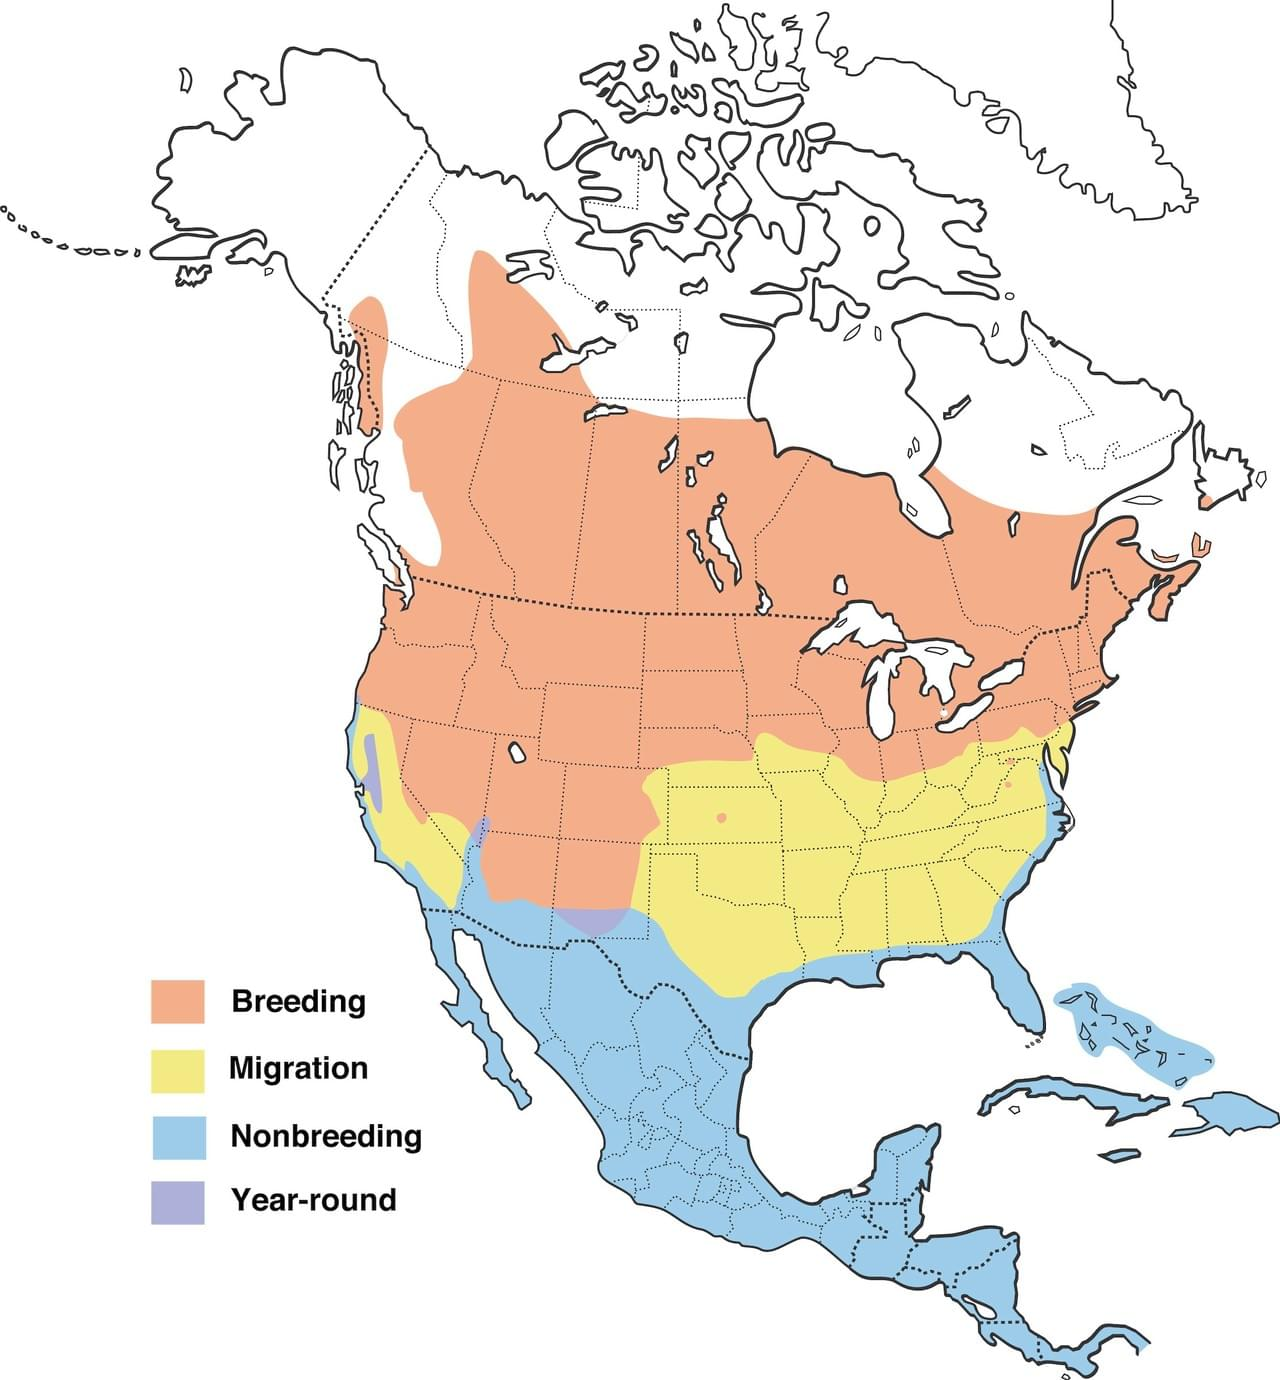 Range map provided by Cornell Lab of Ornithology